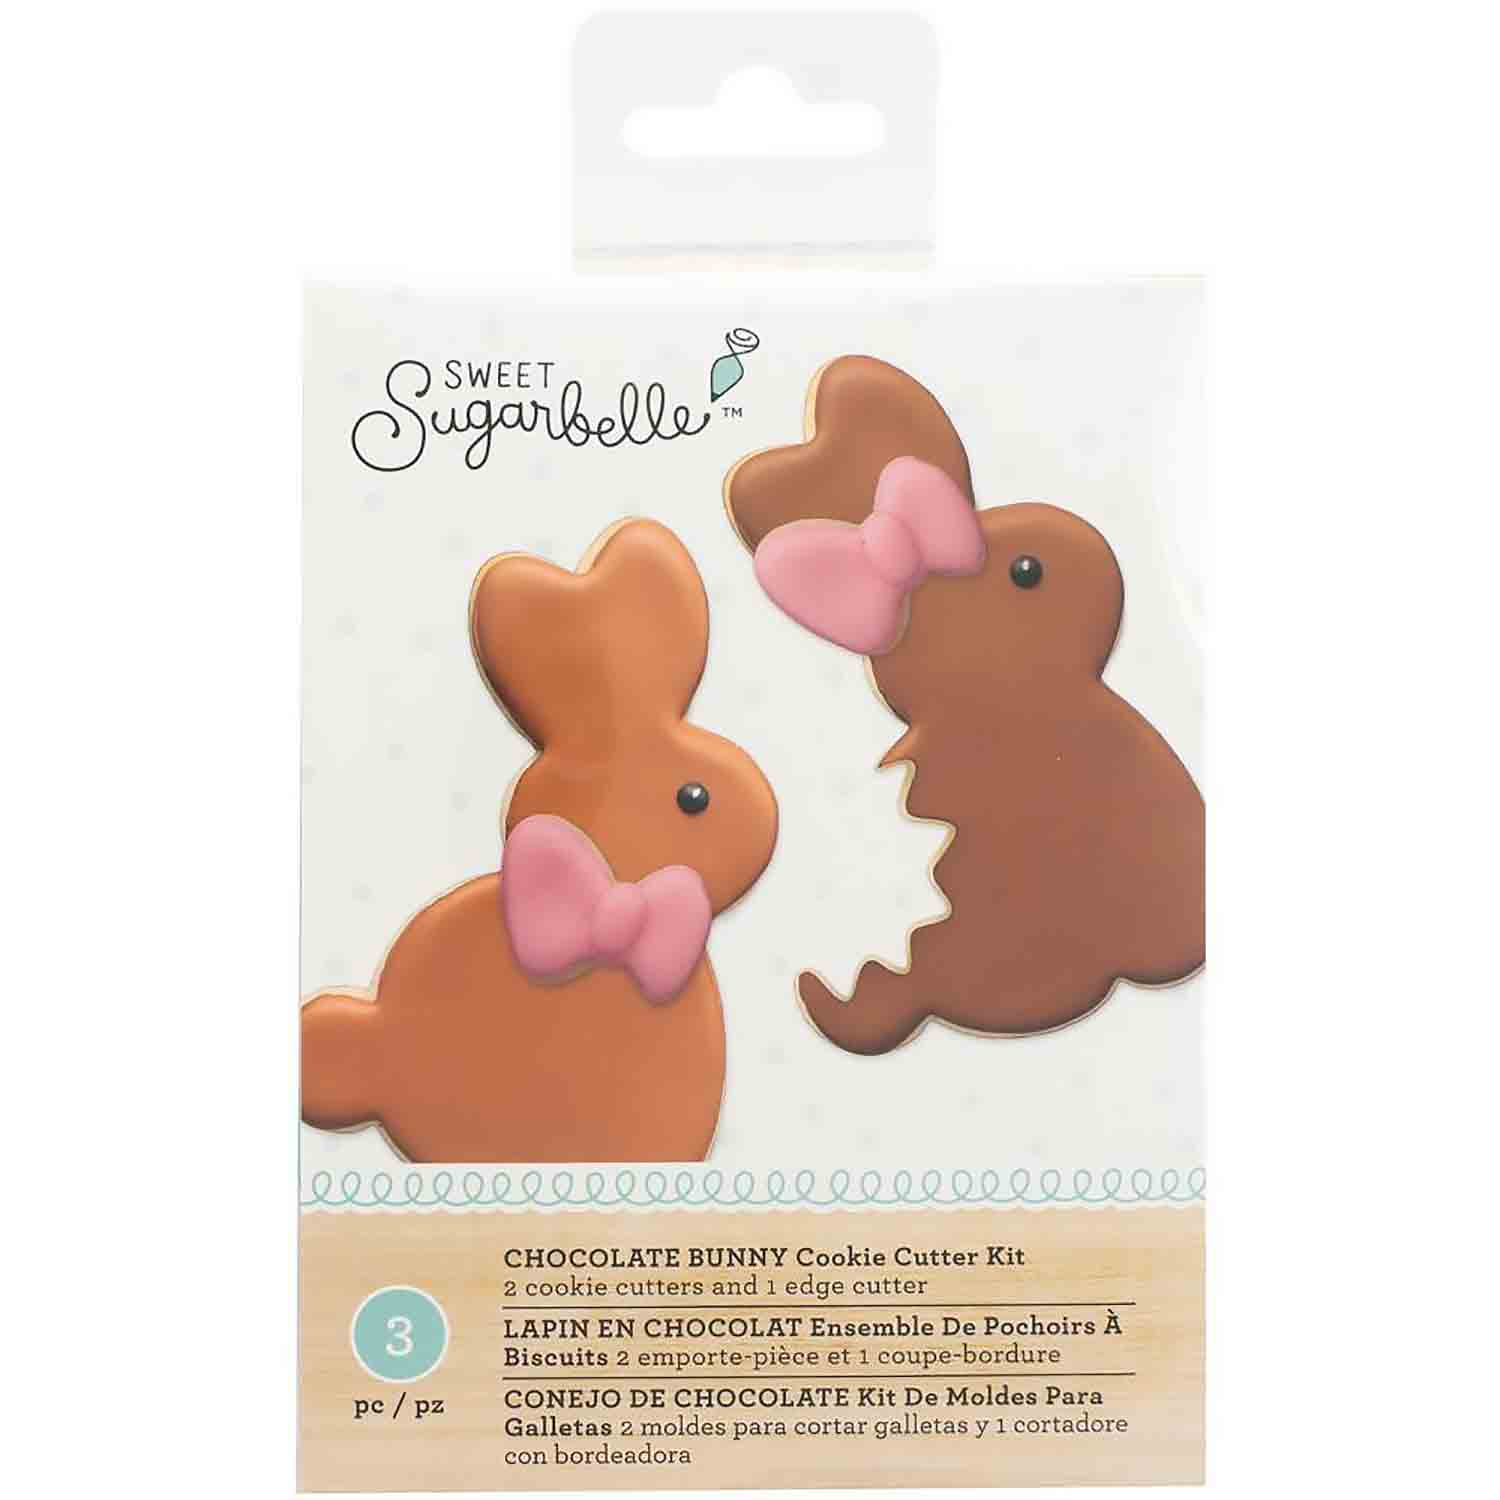 Chocolate Bunny Cookie Cutter Set by Sweet Sugarbelle